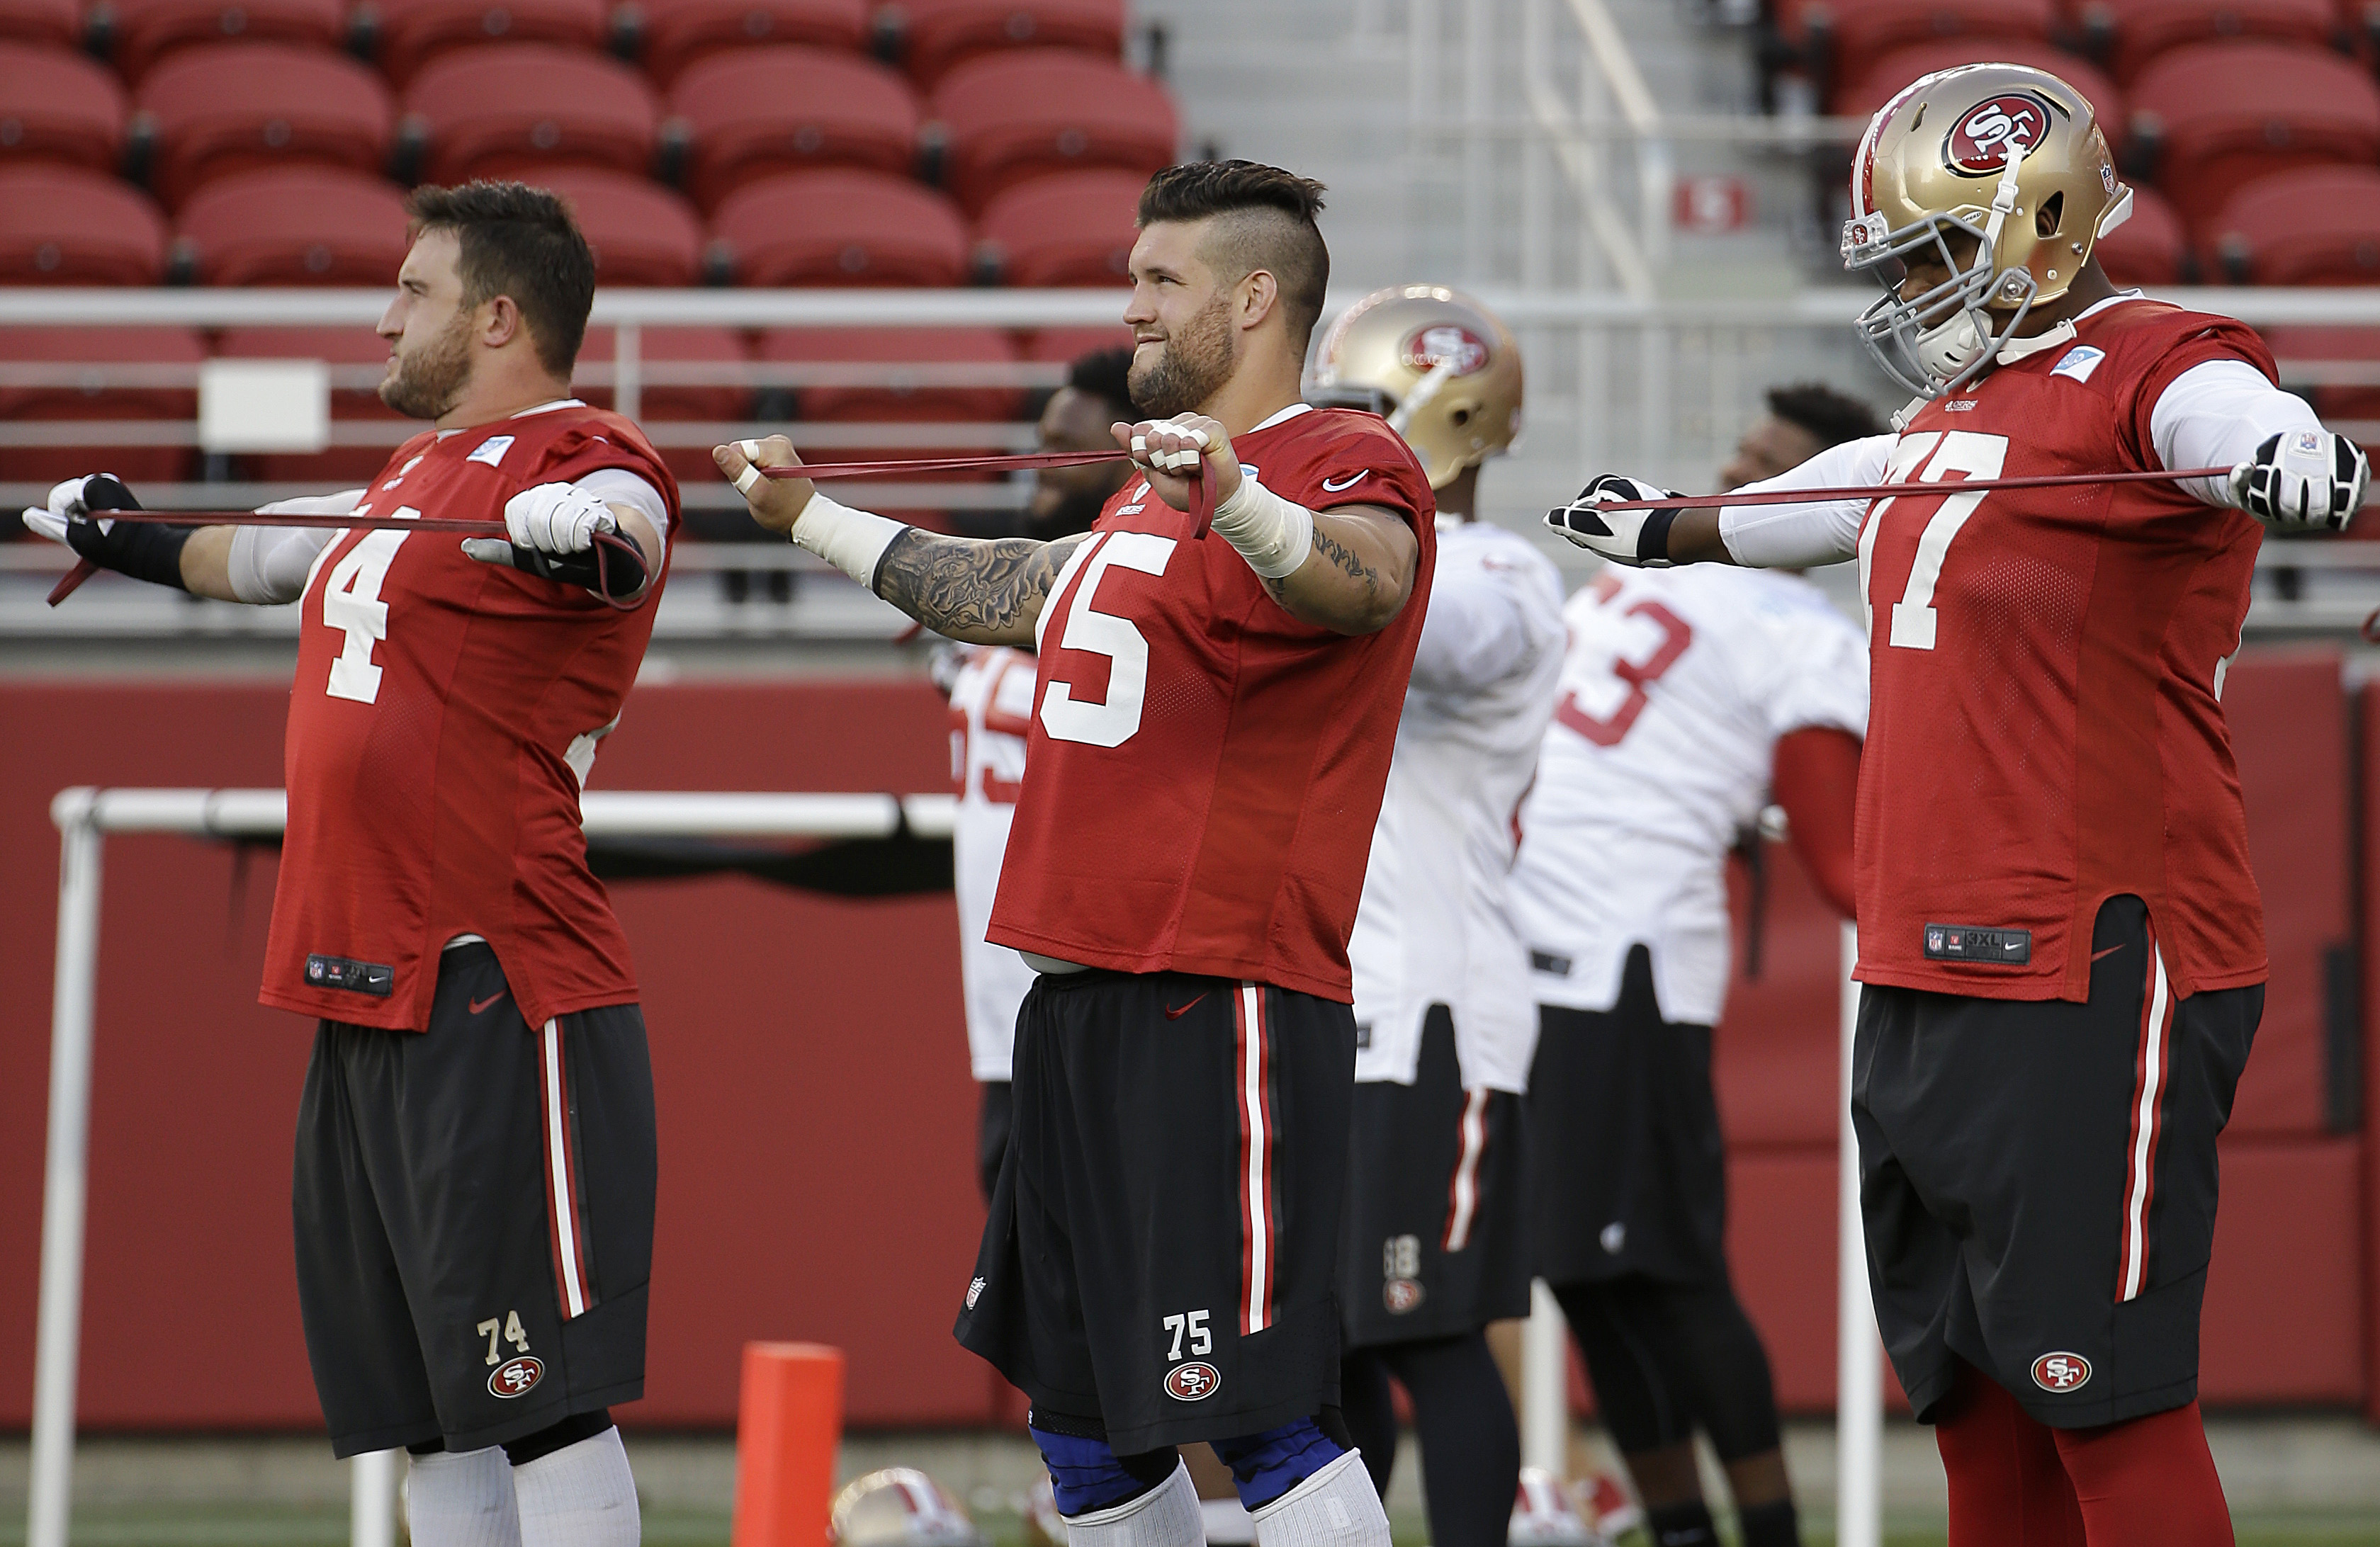 San Francisco 49ers offensive linemen Joe Staley, from left, Alex Boone and Trent Brown stretch during the team's NFL football training camp in Santa Clara, Calif., Saturday, Aug. 1, 2015. (AP Photo/Jeff Chiu)